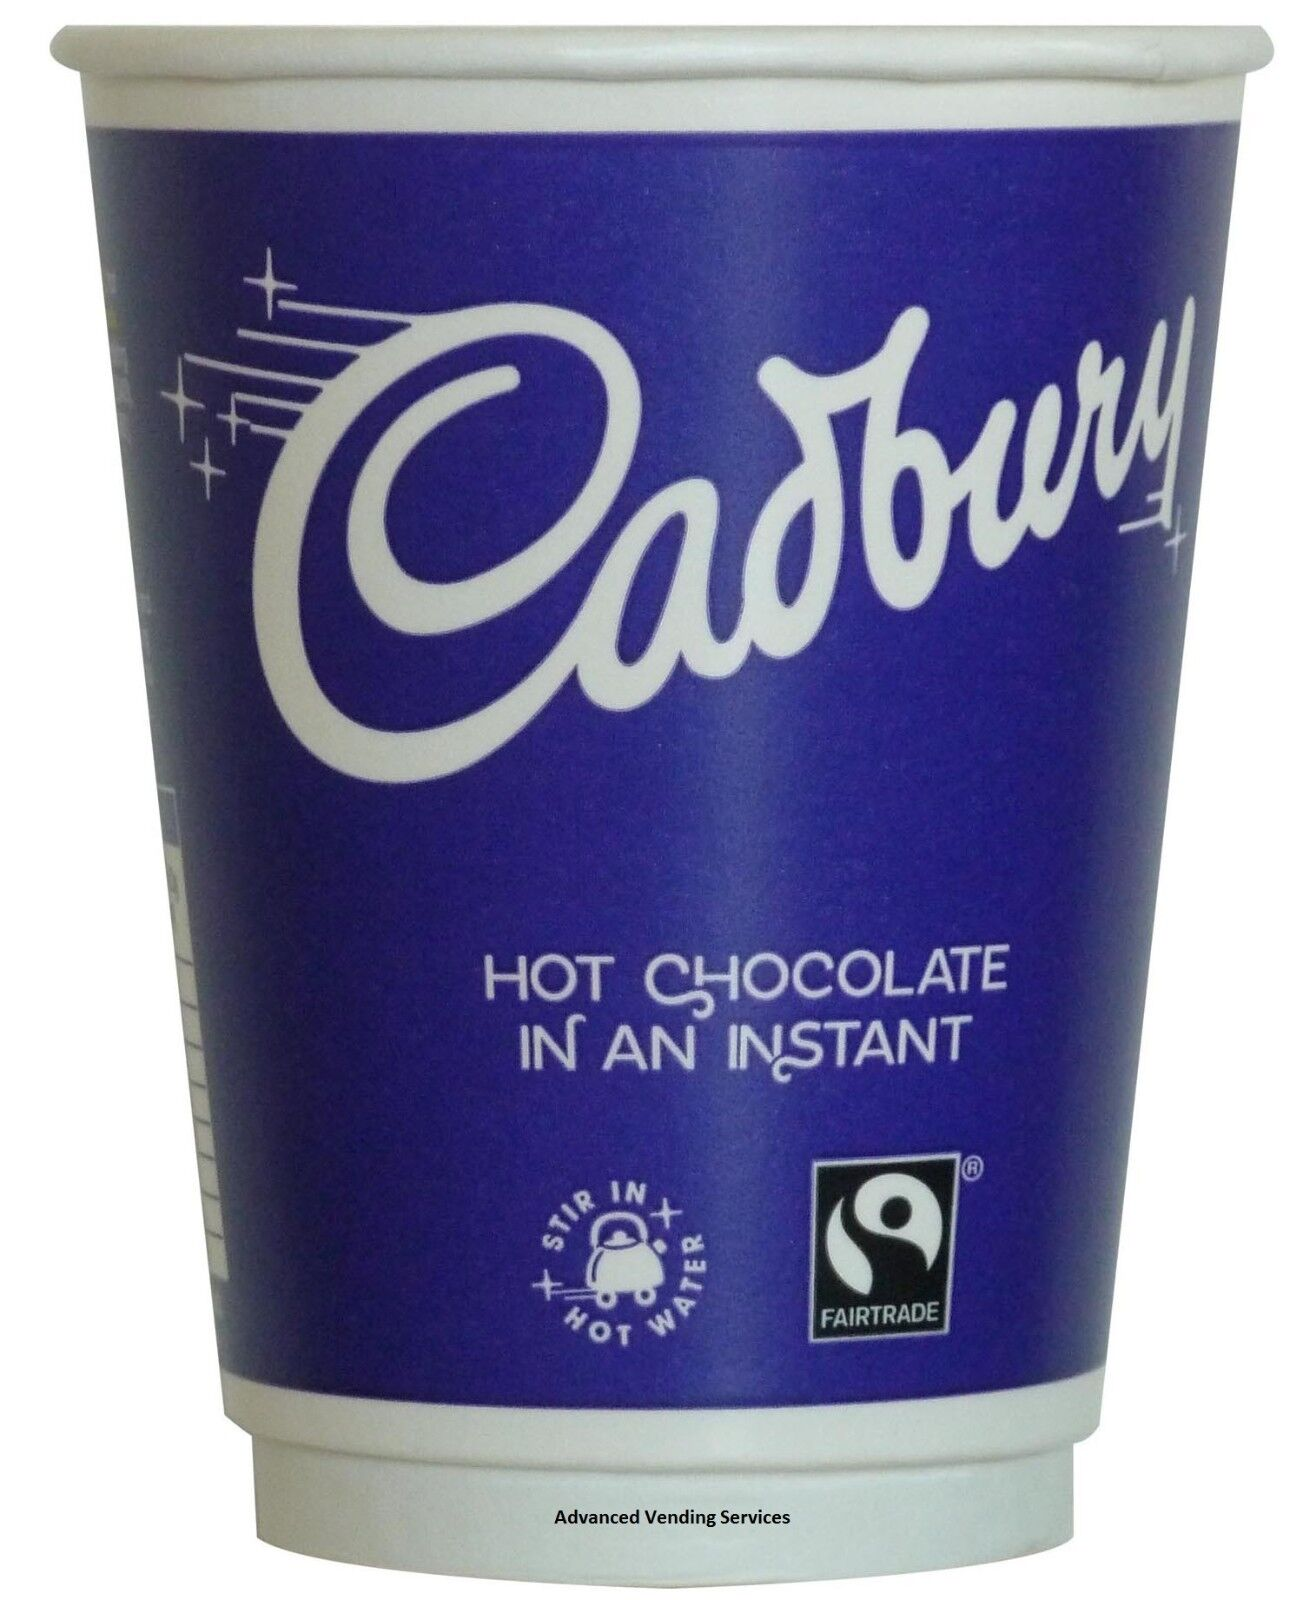 Details About Cadbury Hot Chocolate Drink 2go 12oz Fresh Foil Seal Incup Smooth Creamy X 150